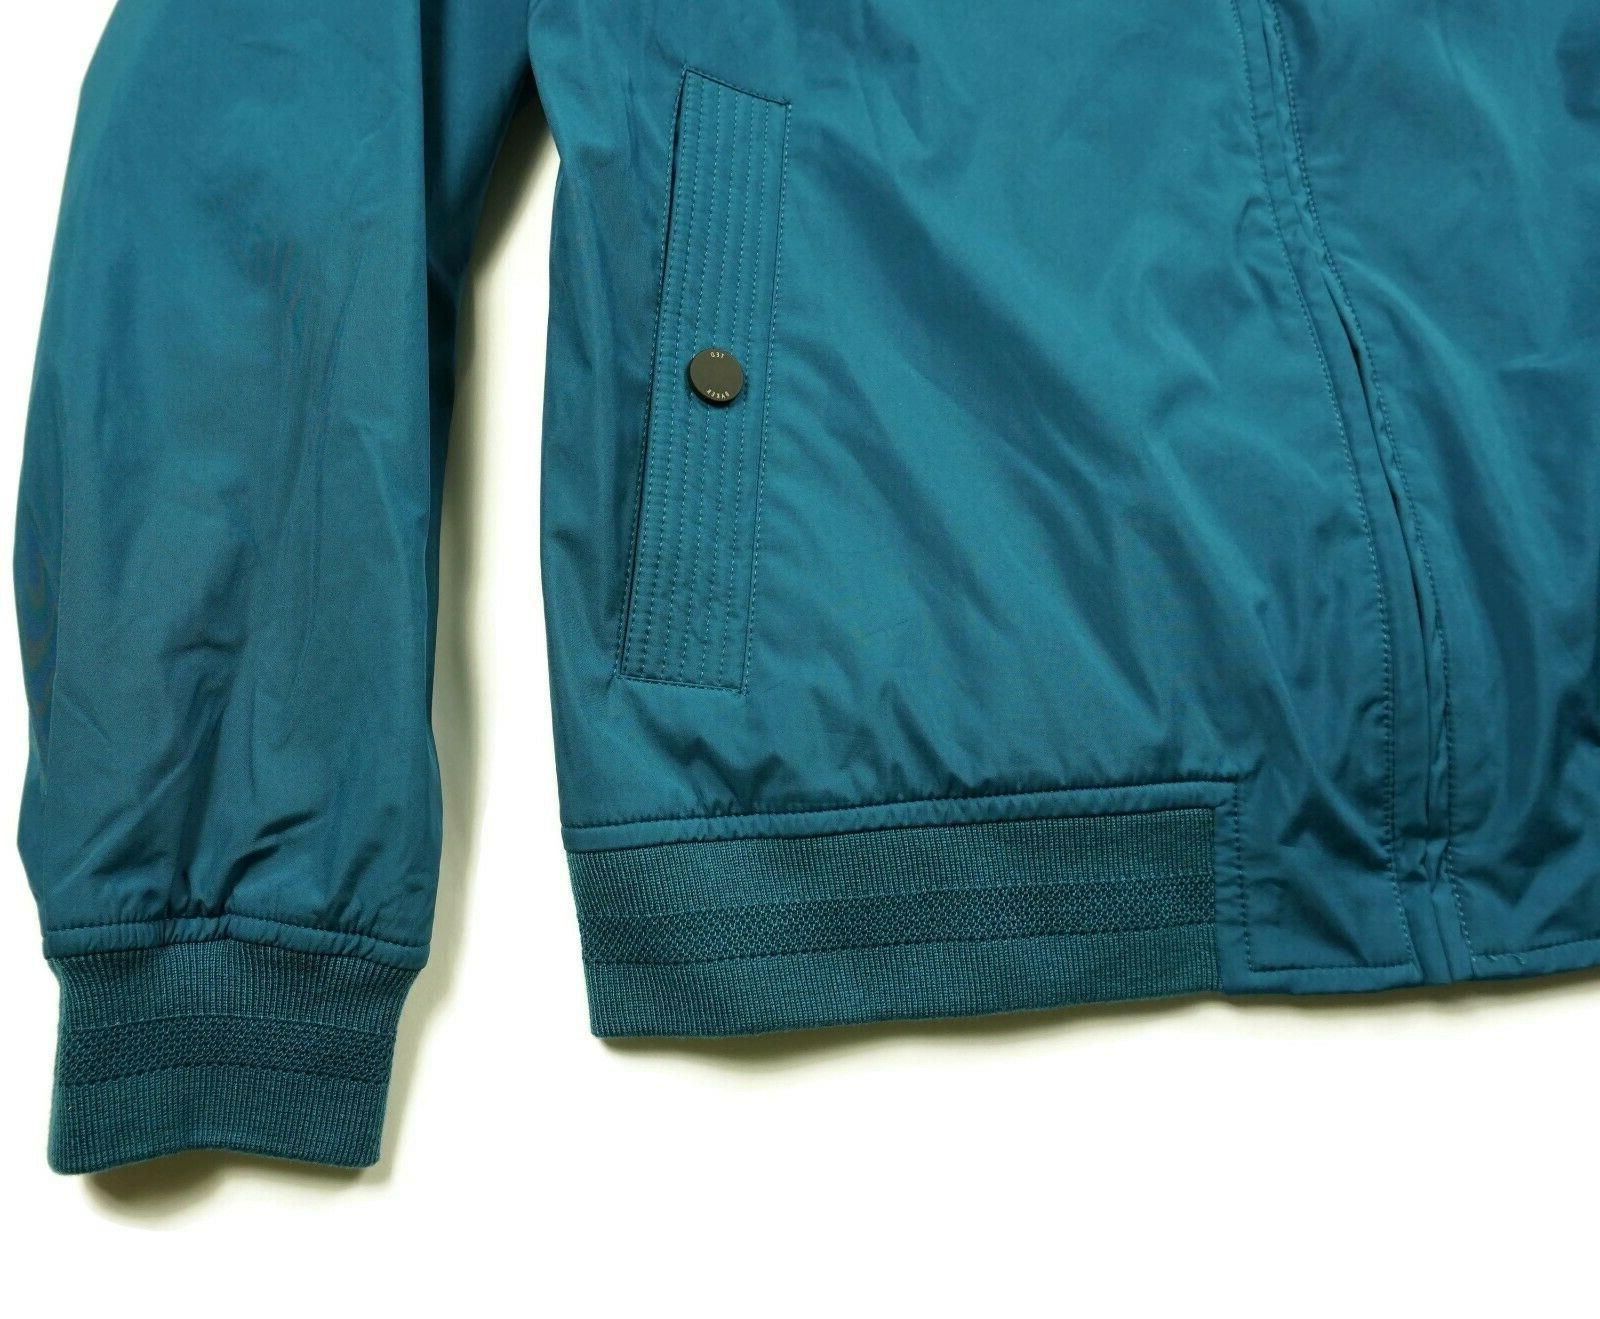 Ted Mens Jacket Size 4 Up